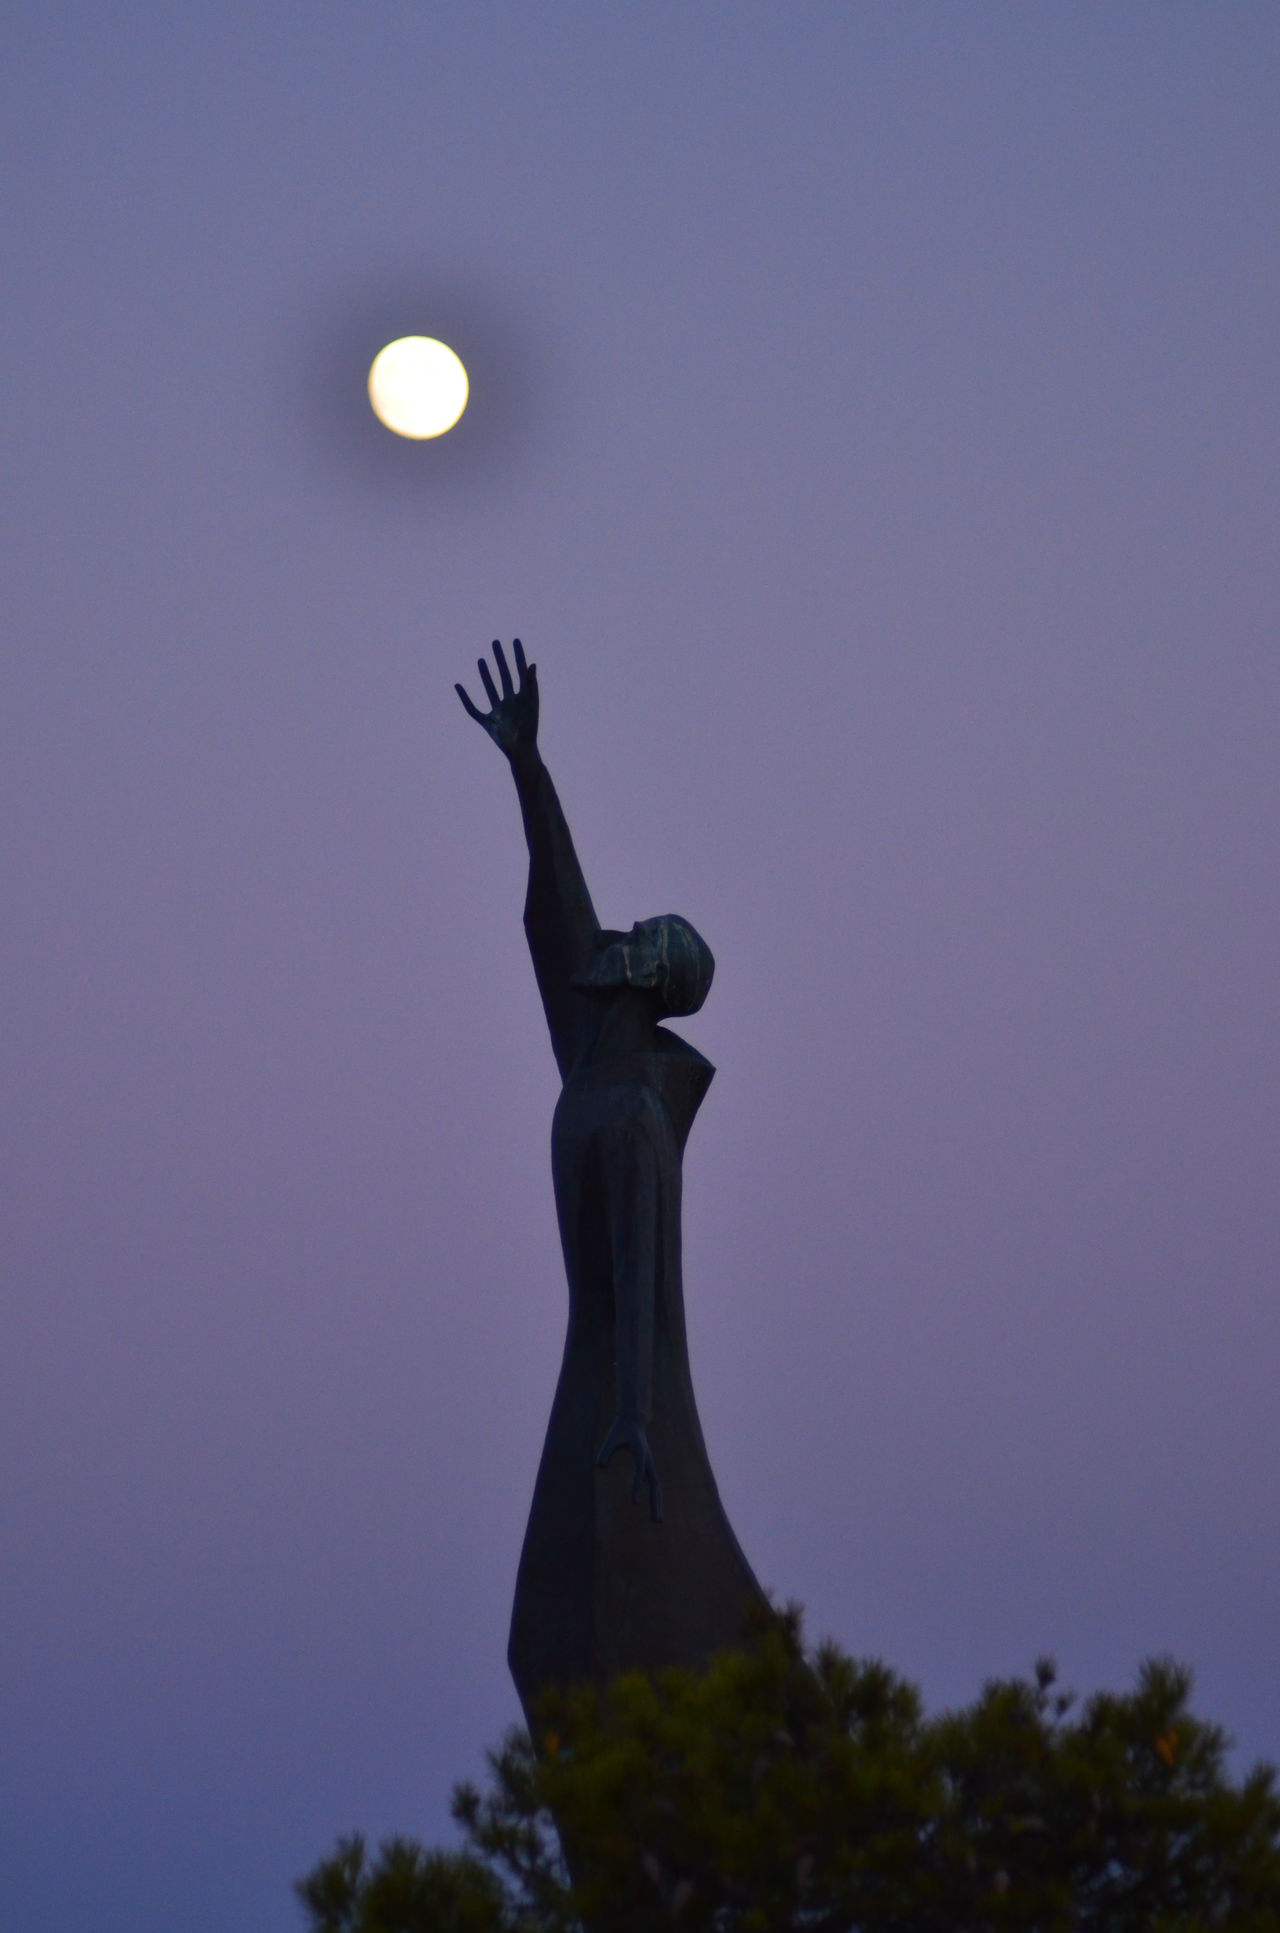 Cagliari Urban City Cagliari, Sardinia City Of Cagliari Moon Saint Francis And The Moon Saint Francis Of Assisi Saint Francis Statue Sardegna Viale Europa Viale Europa Caglia